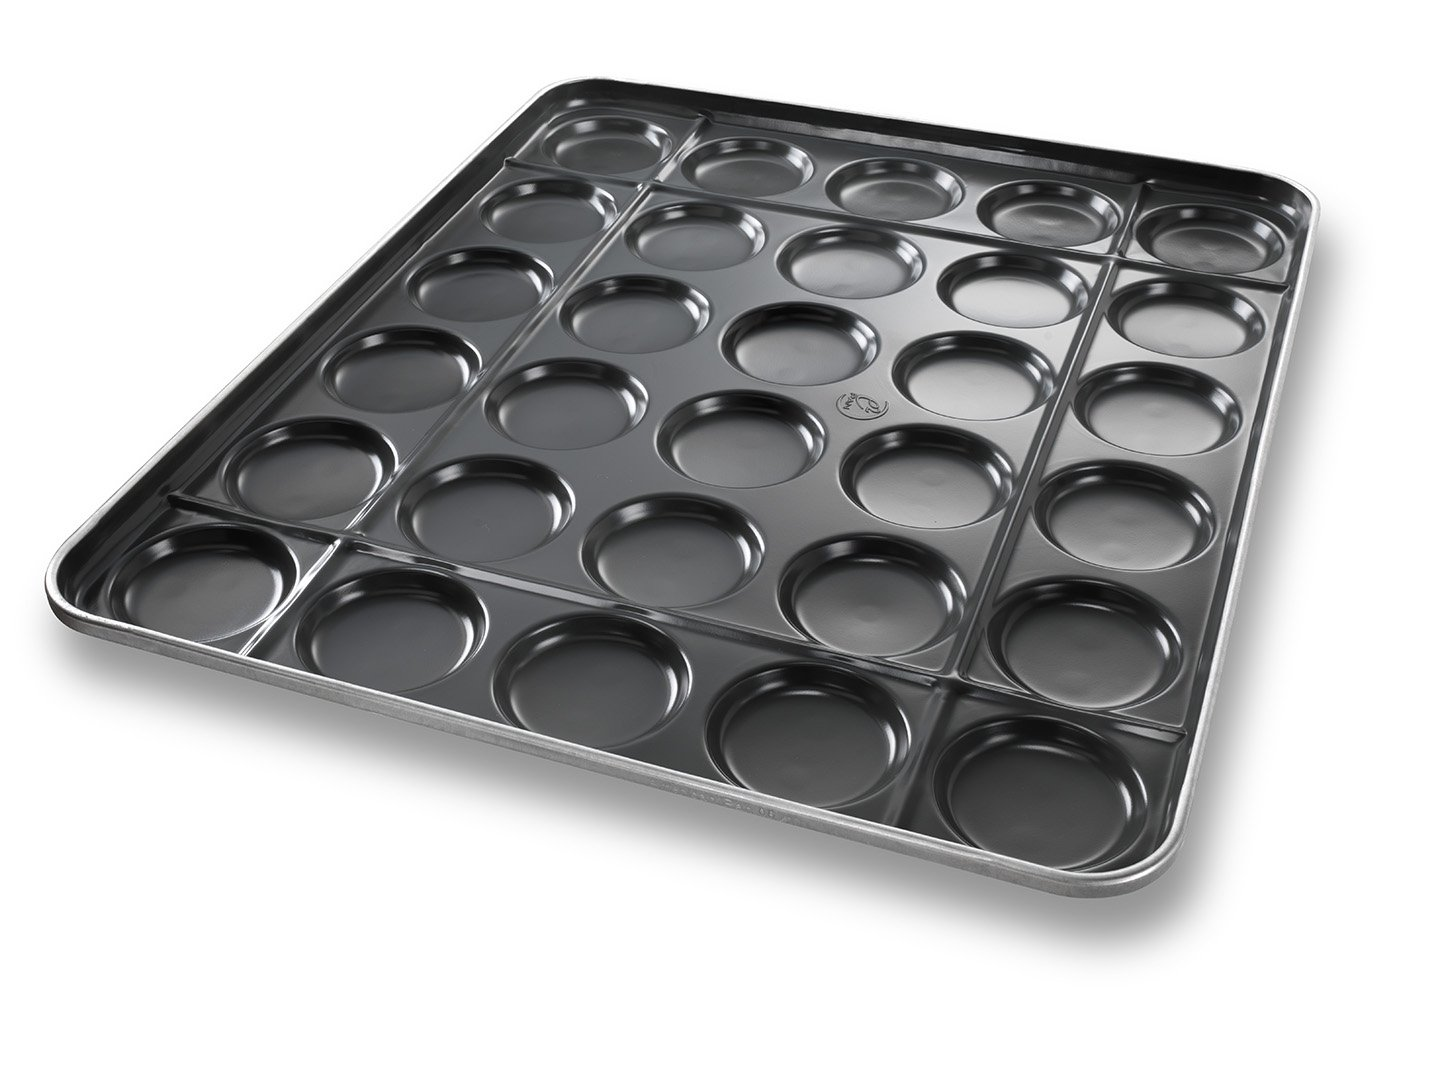 Hamburger Bun ePAN with Structural Ribs – DuraShield® Coating